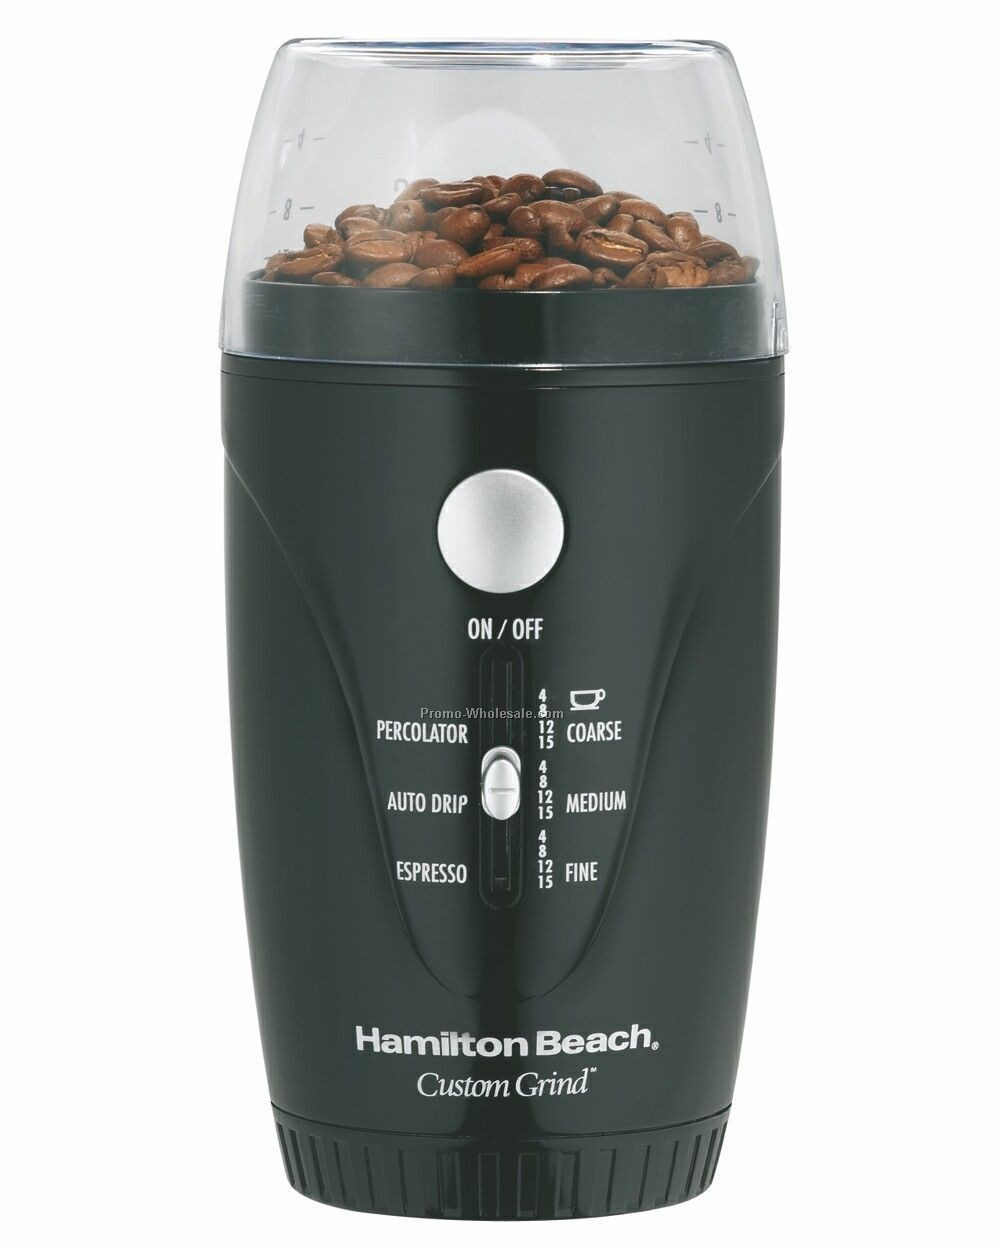 target hamilton beach fresh-grind coffee grinder, coffee maker with grinder, mr dudley coffee grinder